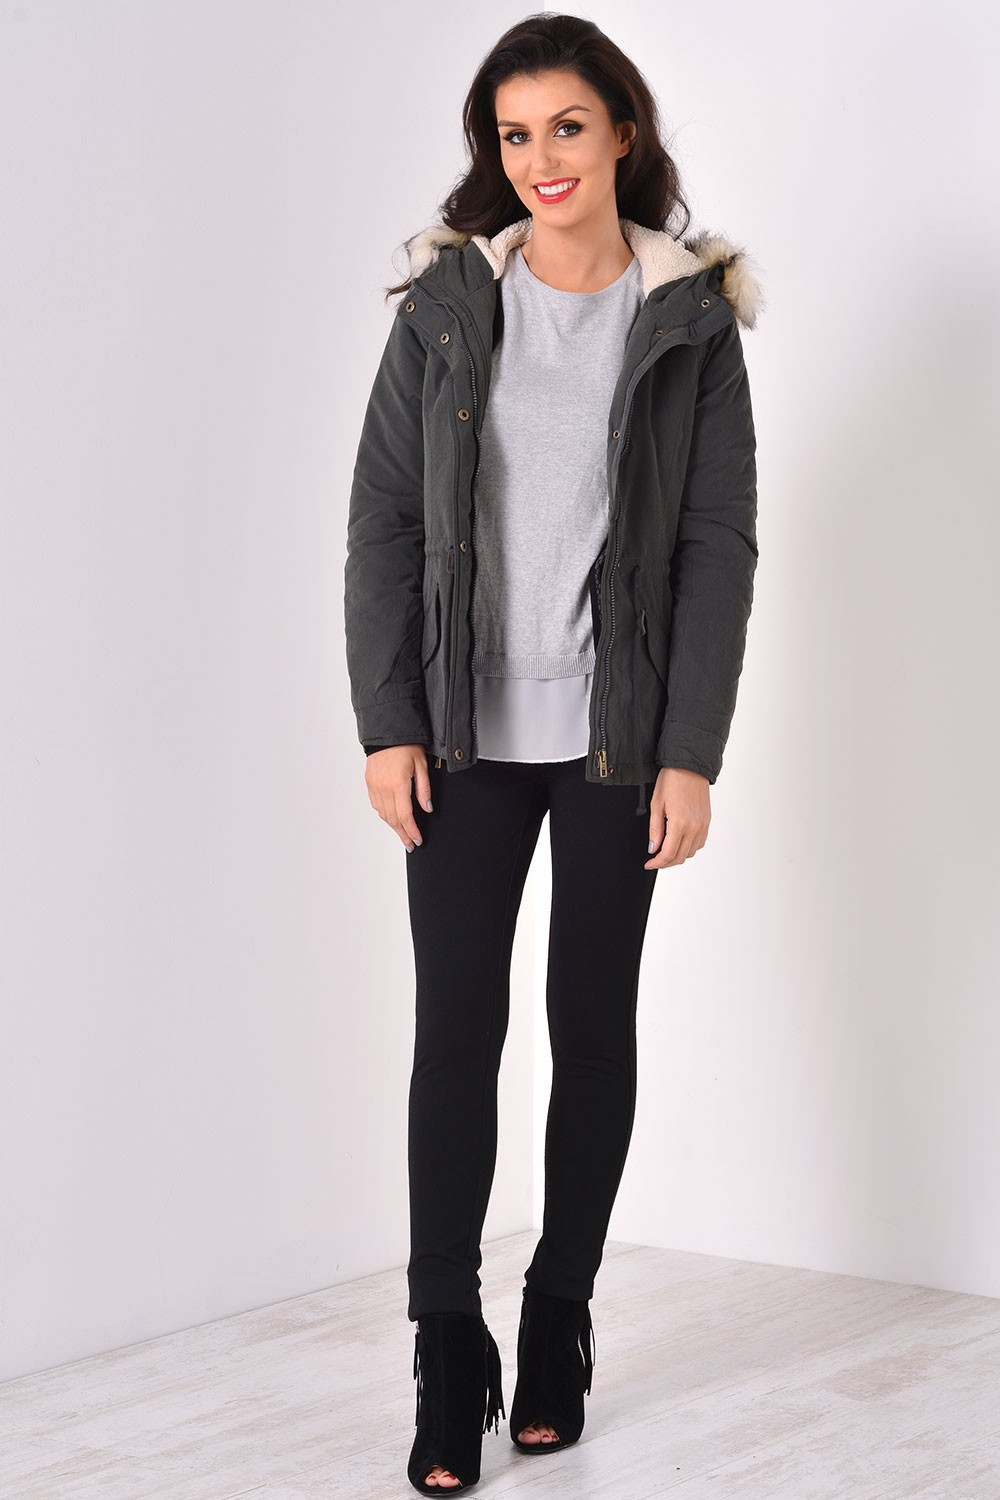 Lucca Short Parka Jacket in Black | iClothing